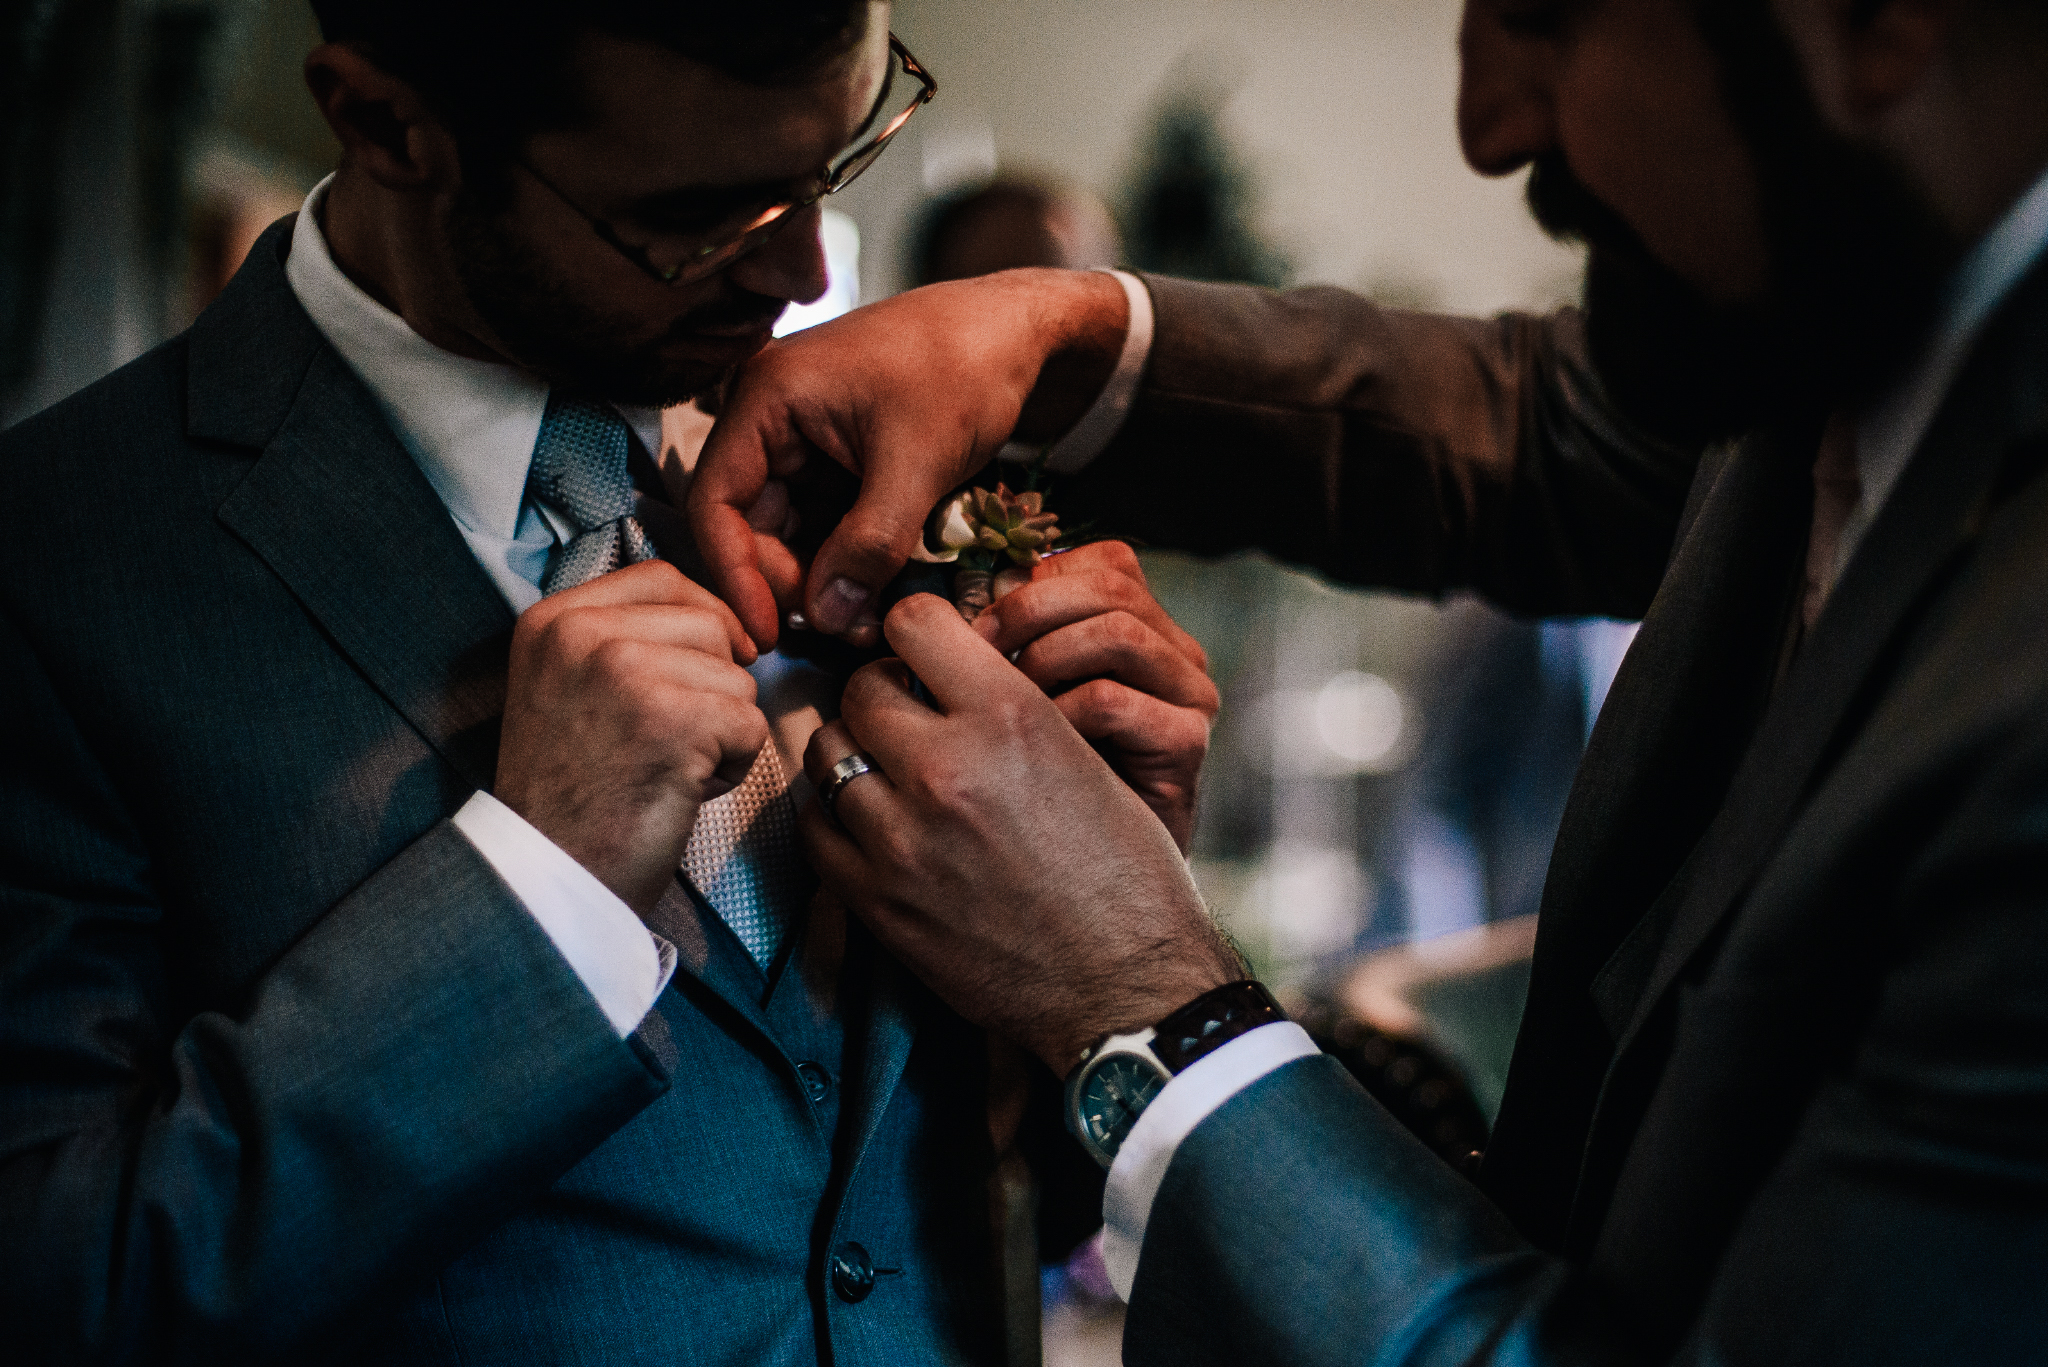 san diego wedding   photographer | men in grey suits helping each other put on boutonniere